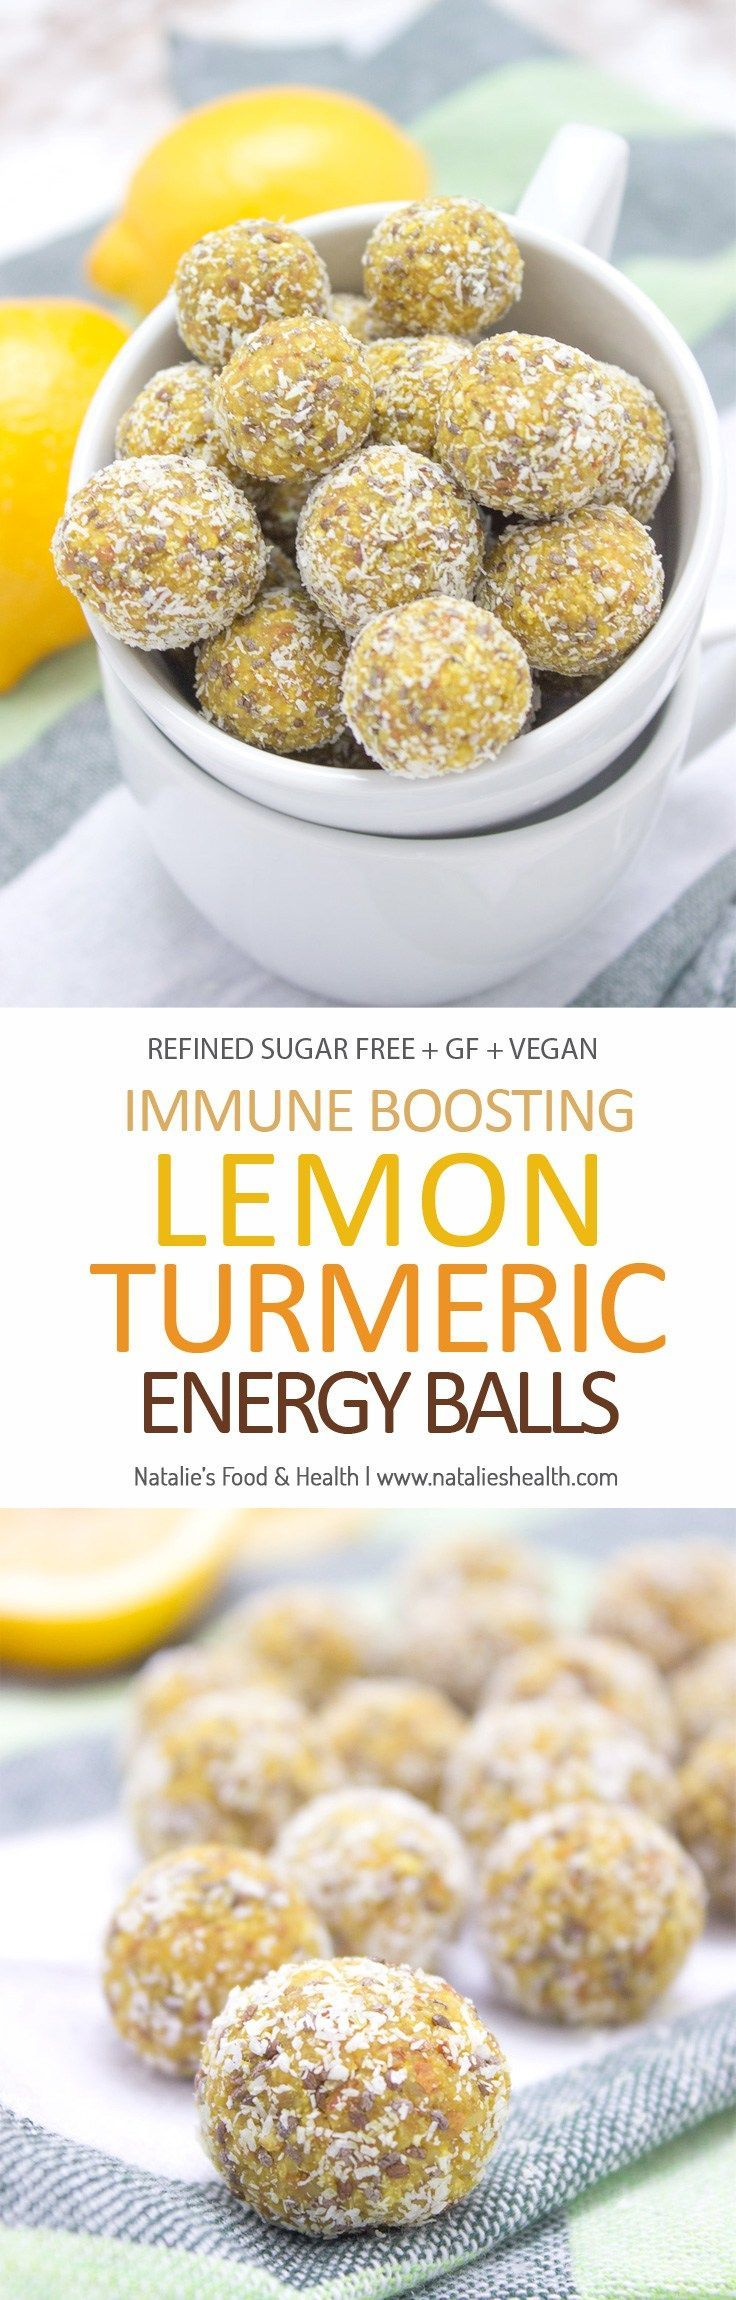 Lemon Turmeric Energy Balls rich in beautiful citrus aroma enriched with turmeric, and chia seeds. These immune boosting, refined sugar-free energy balls are rich in fibers and plant-based proteins. Perfect for everyday snacking. CLICK to read the recipe